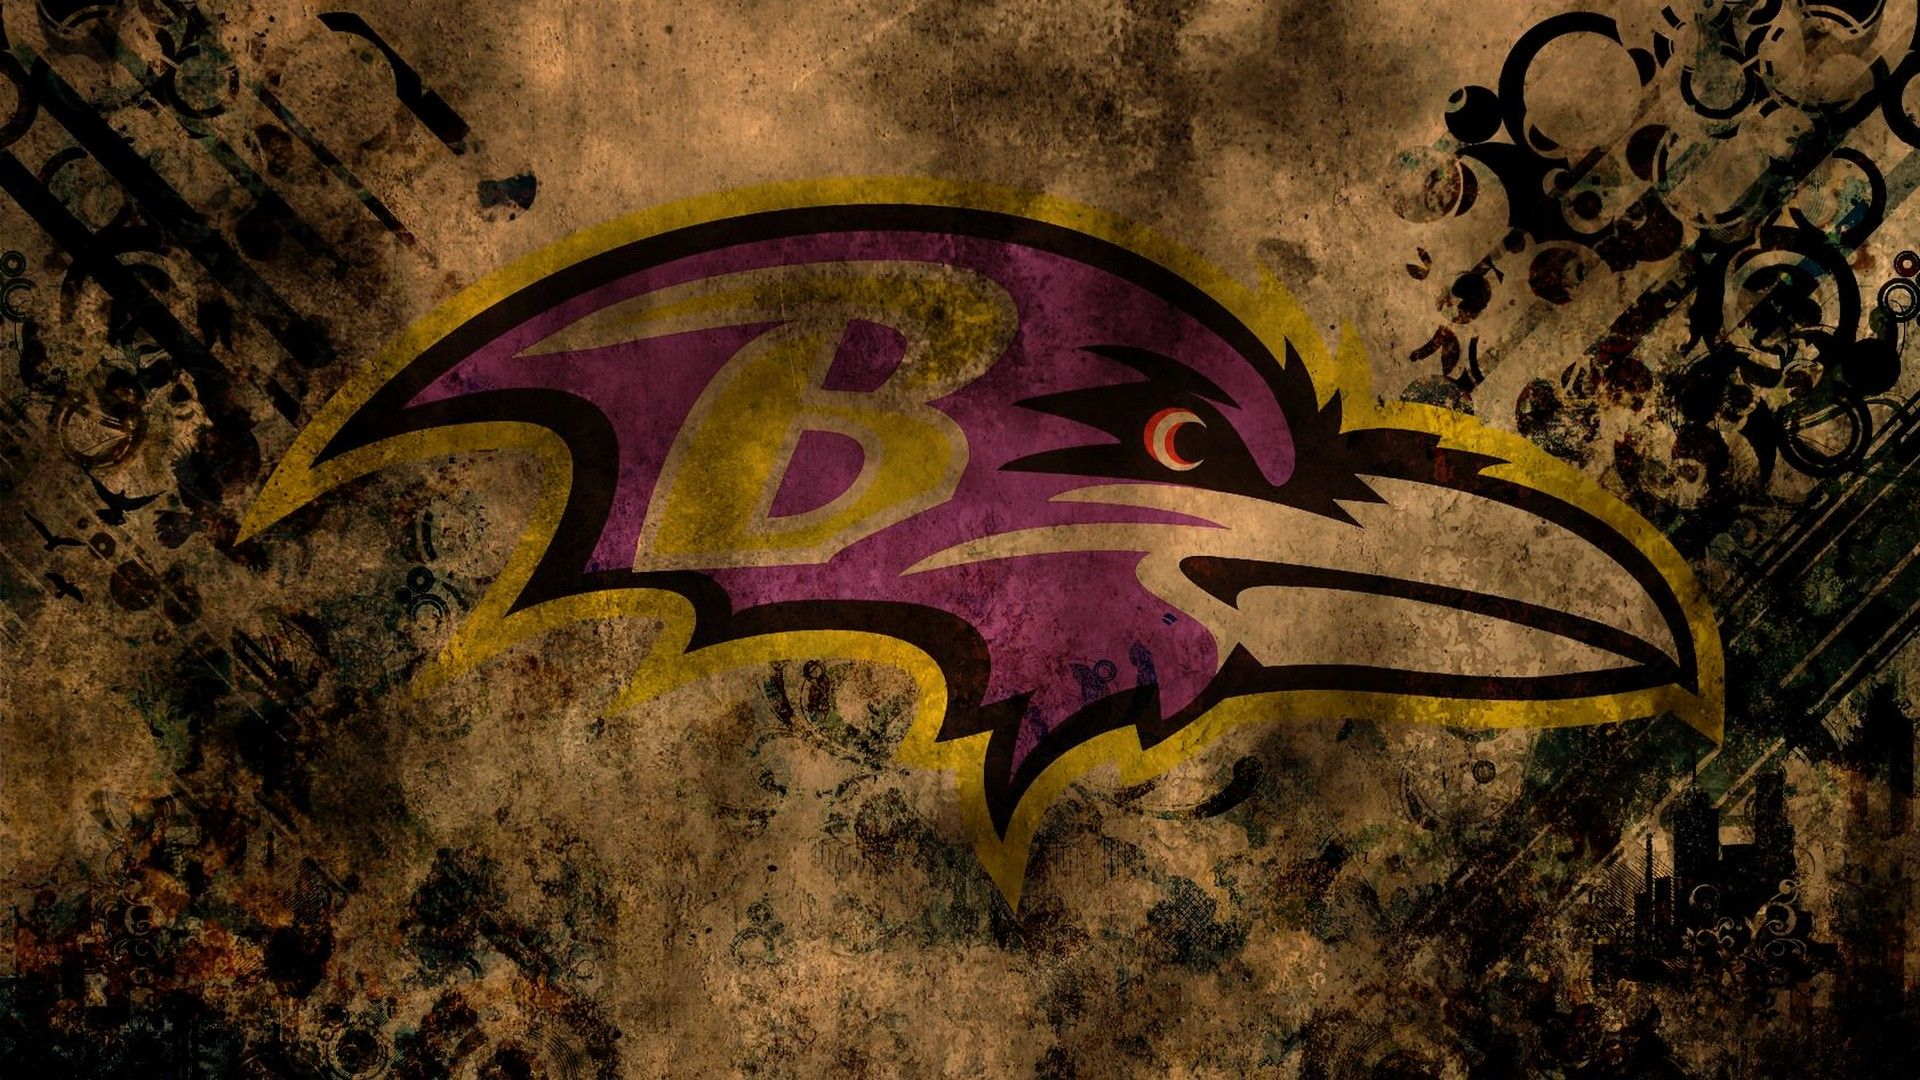 Hd Ravens Backgrounds 2021 Nfl Football Wallpapers Nfl Football Wallpaper Ravens Wallpaper Baltimore Ravens Wallpapers